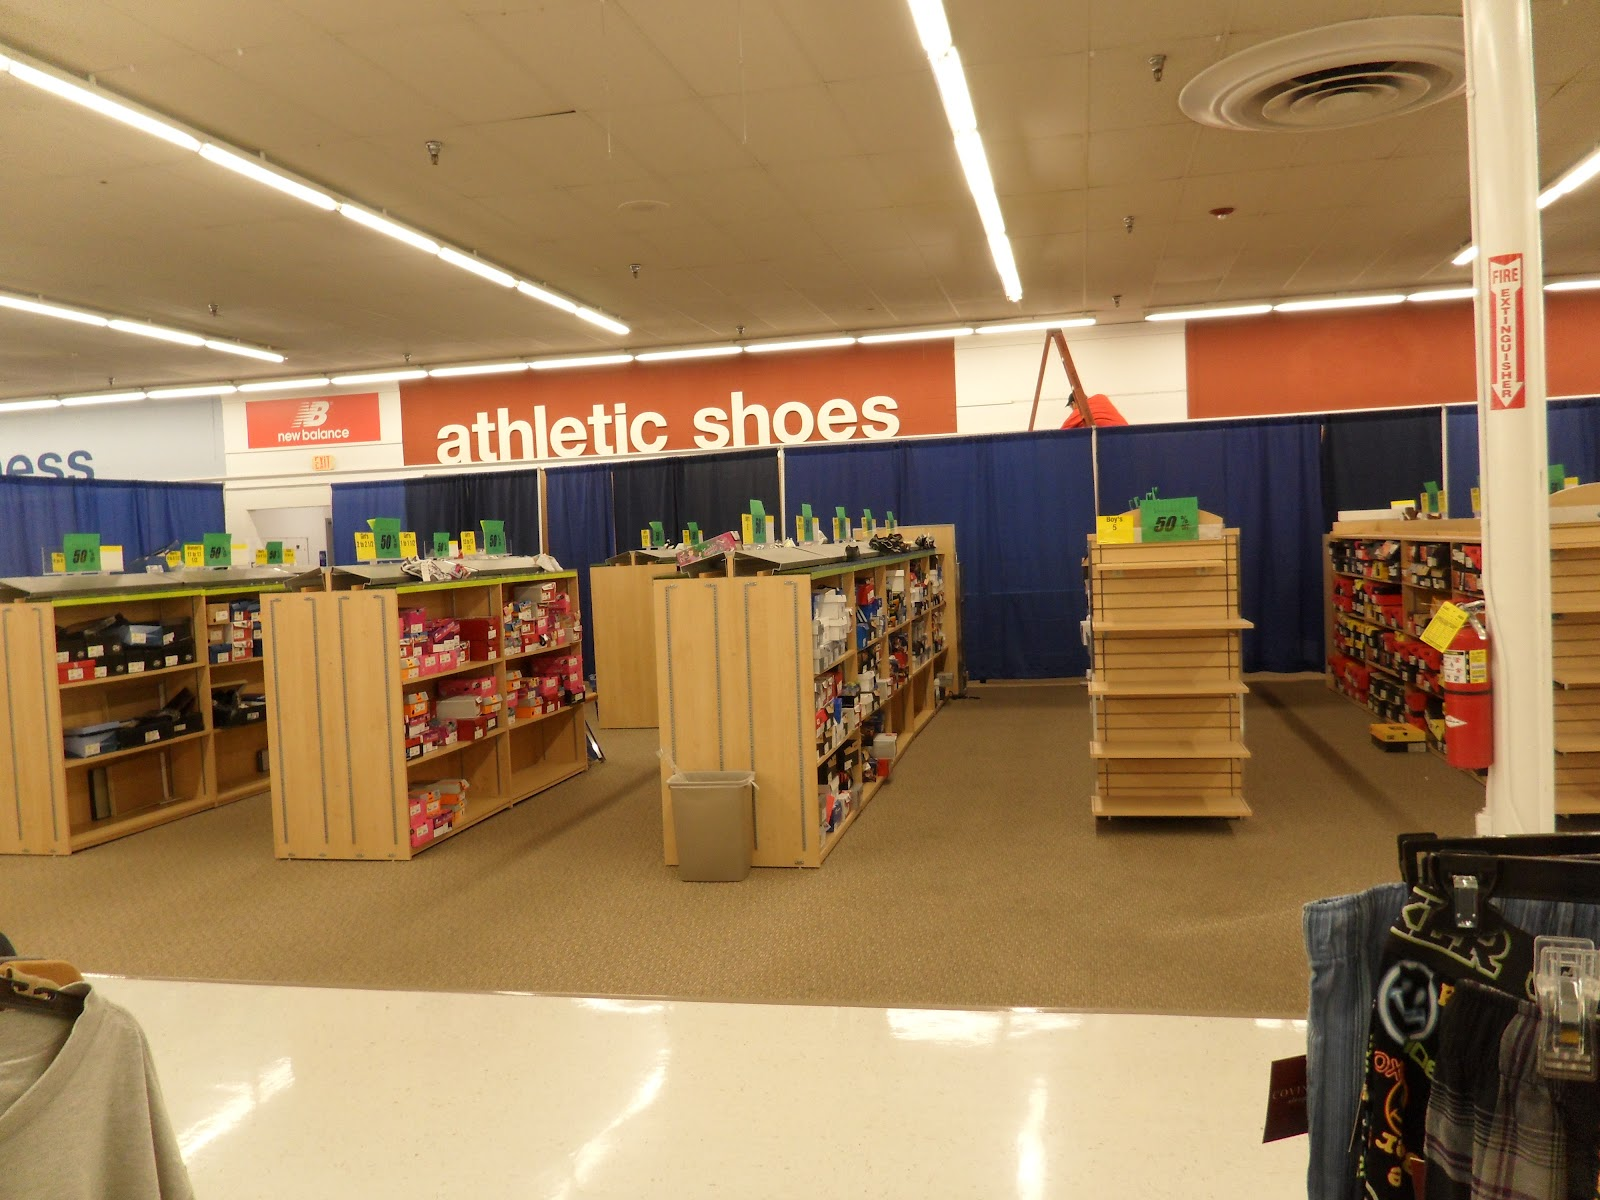 Kmart World: Spotlight Part 1 of 2: Sears to Kmart - Marietta, GA